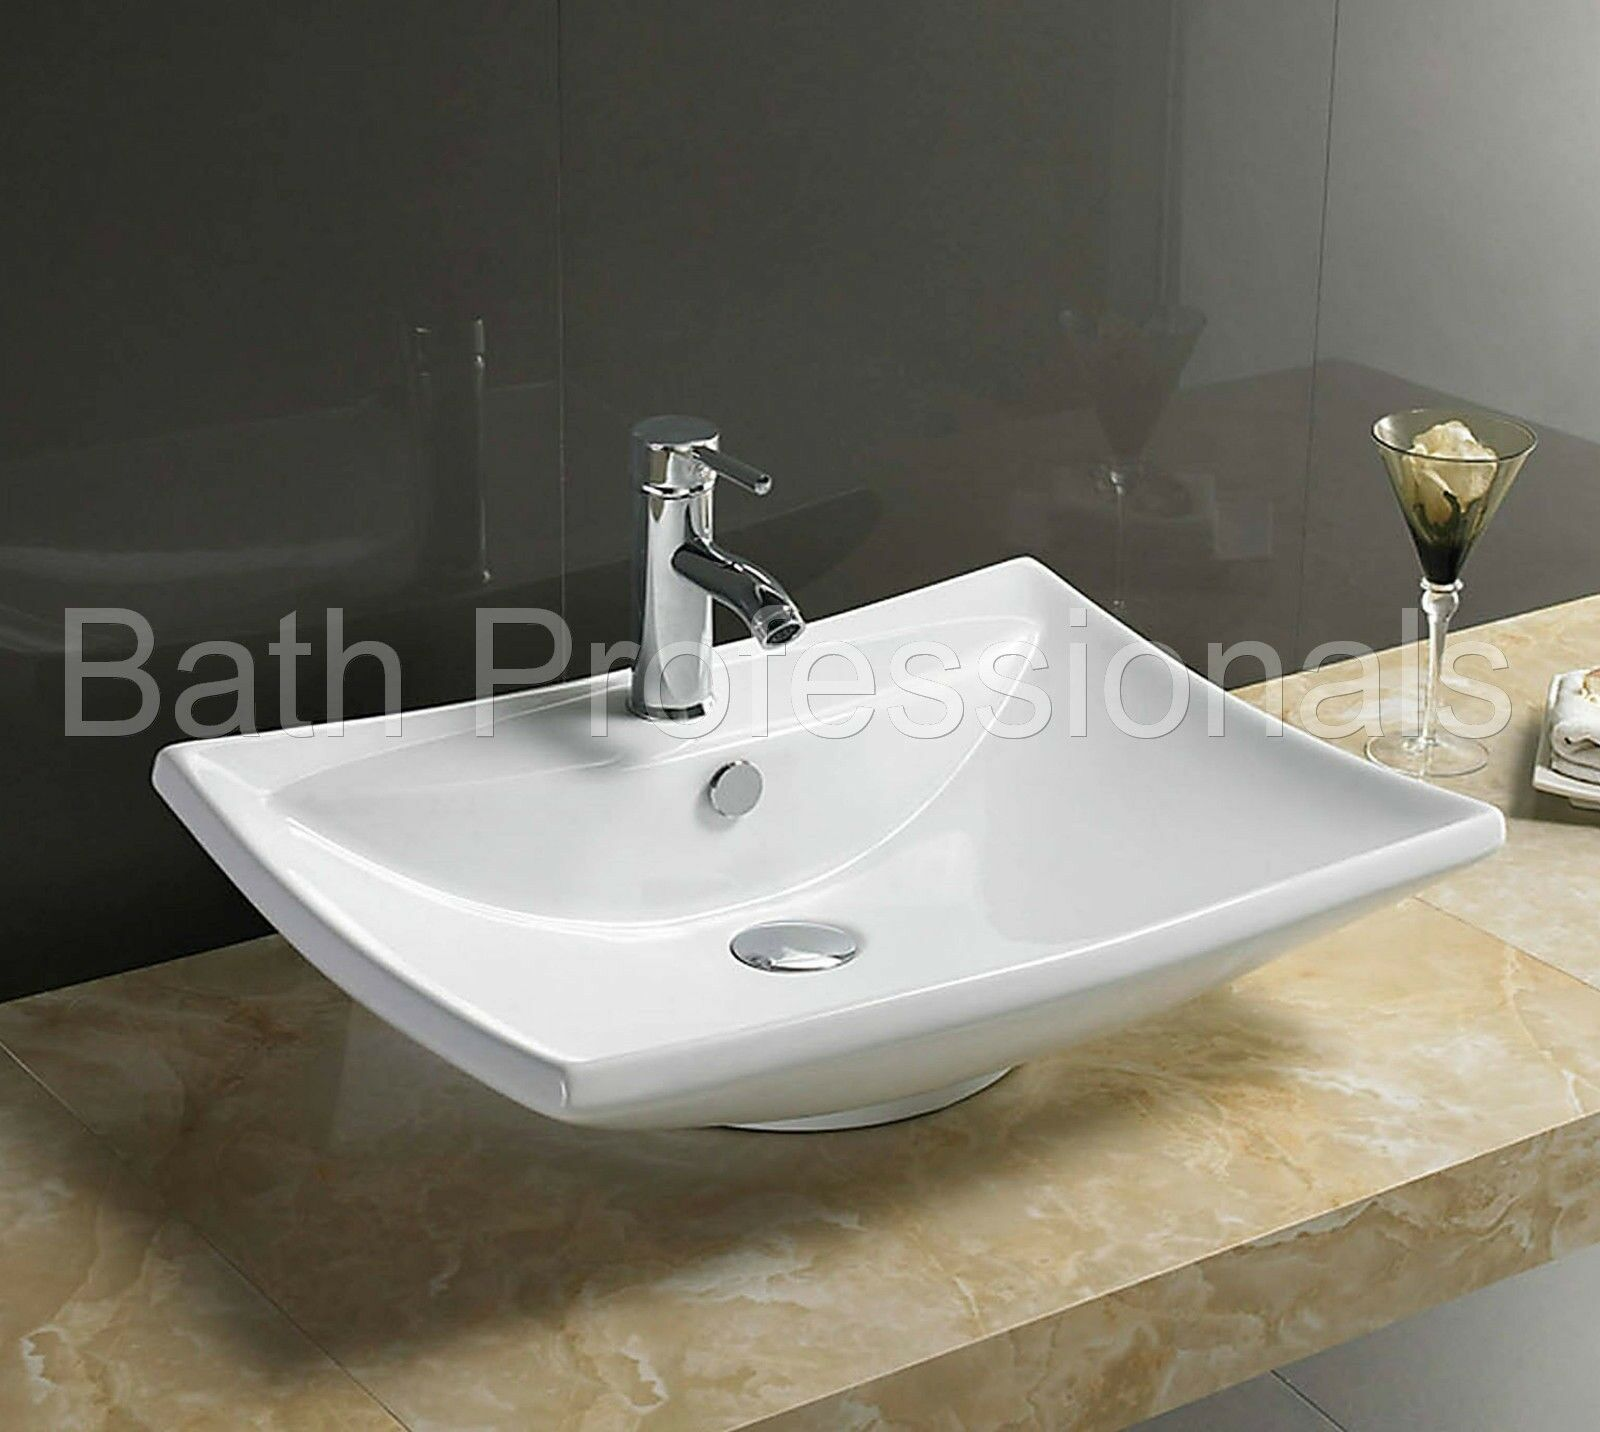 Basin Sink Countertop Ceramic Bathroom Cloakroom Wall Hung Mounted Square Wh72 Ebay